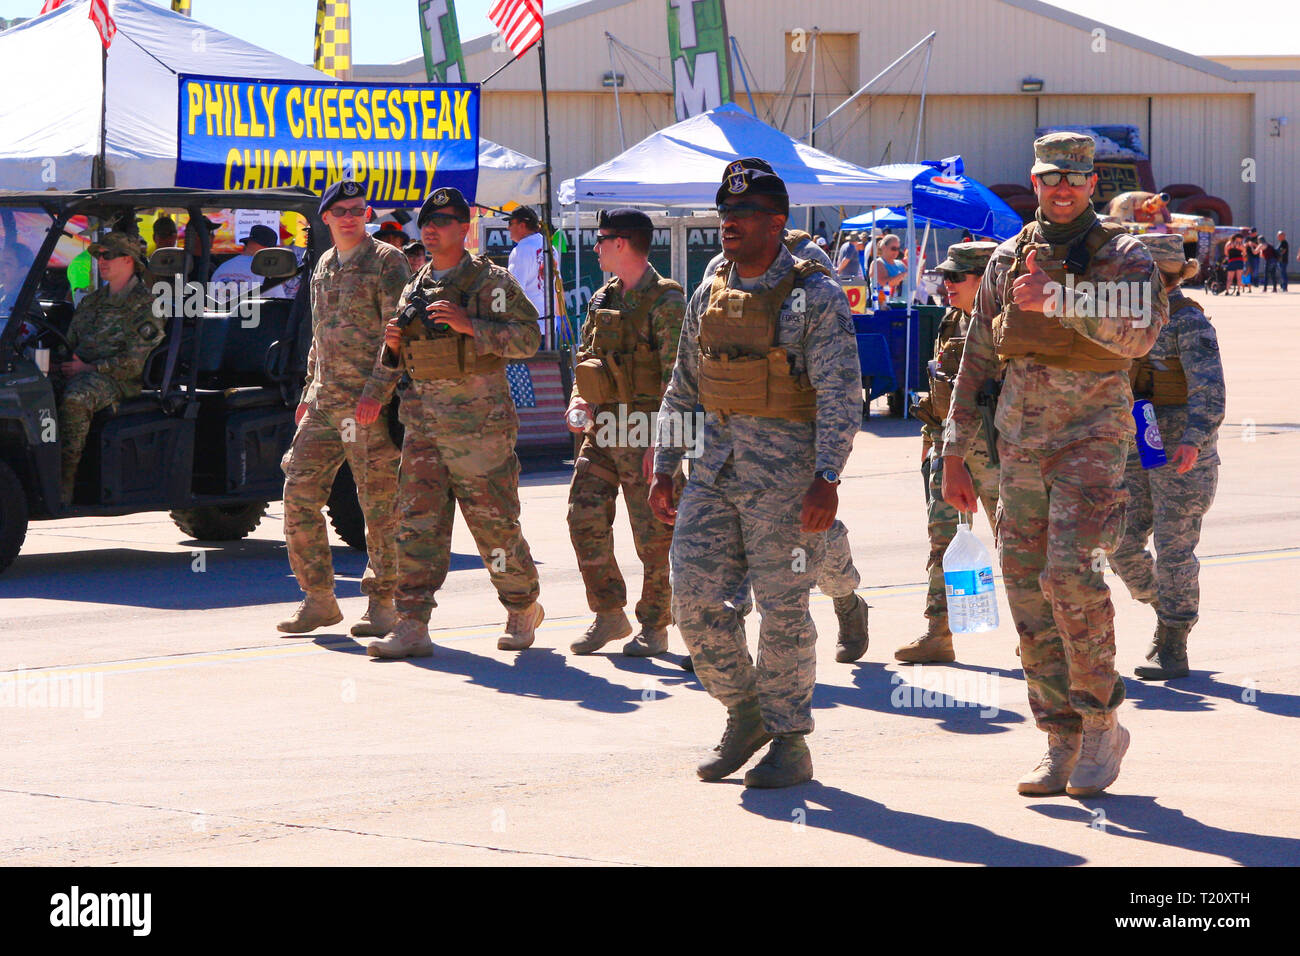 US Military personnel enjoying the day at Davis-Monthan AFB on airshow day in Tucson AZ - Stock Image